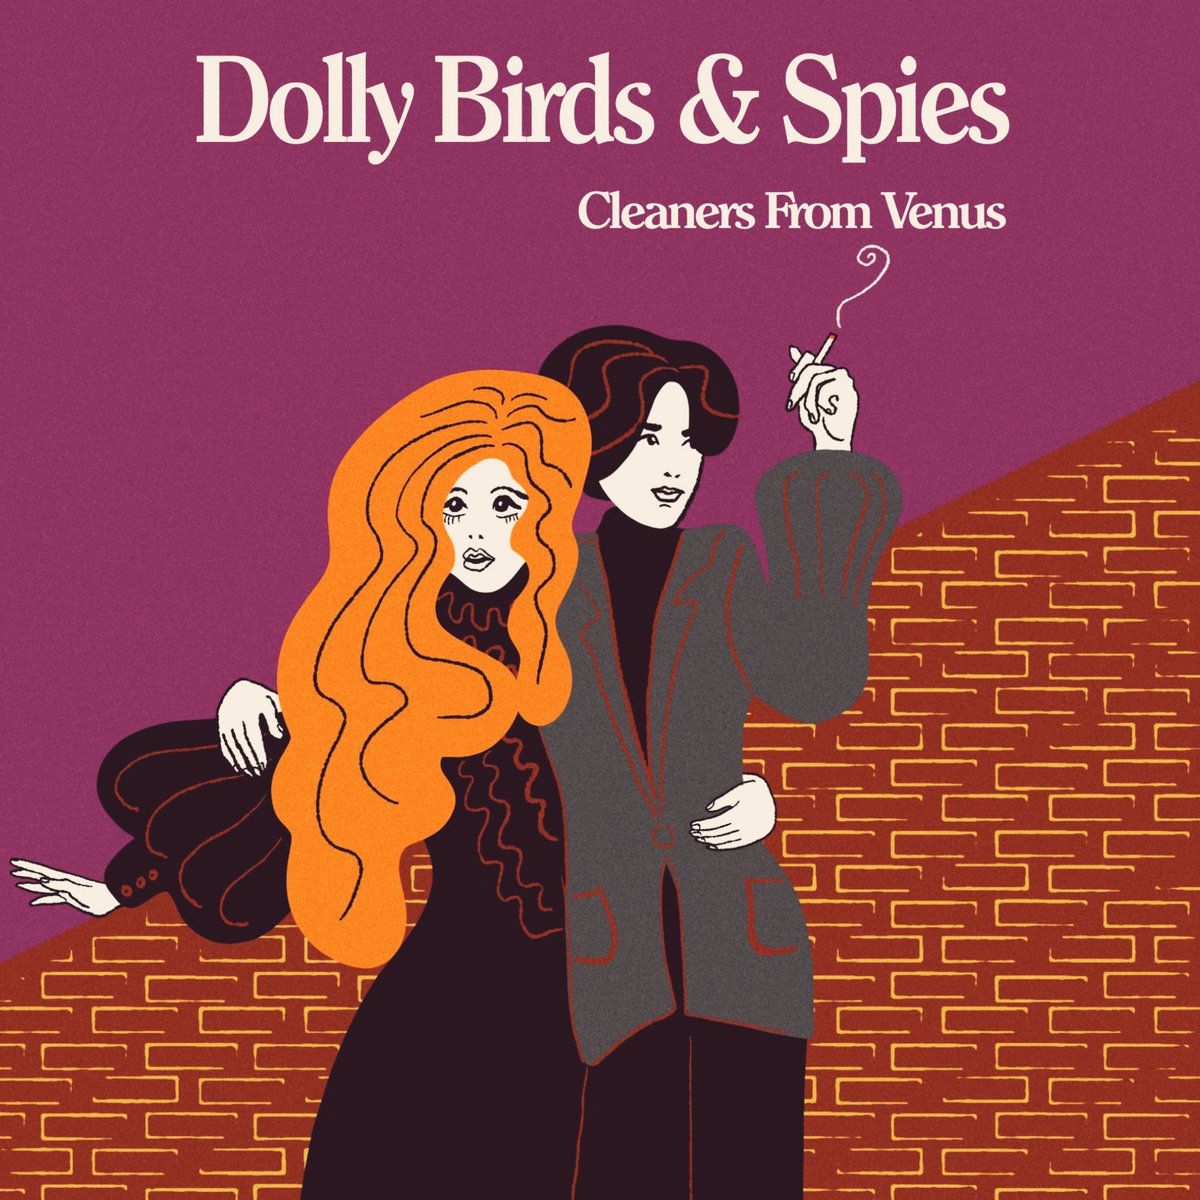 Dolly Birds & Spies | The Cleaners From Venus